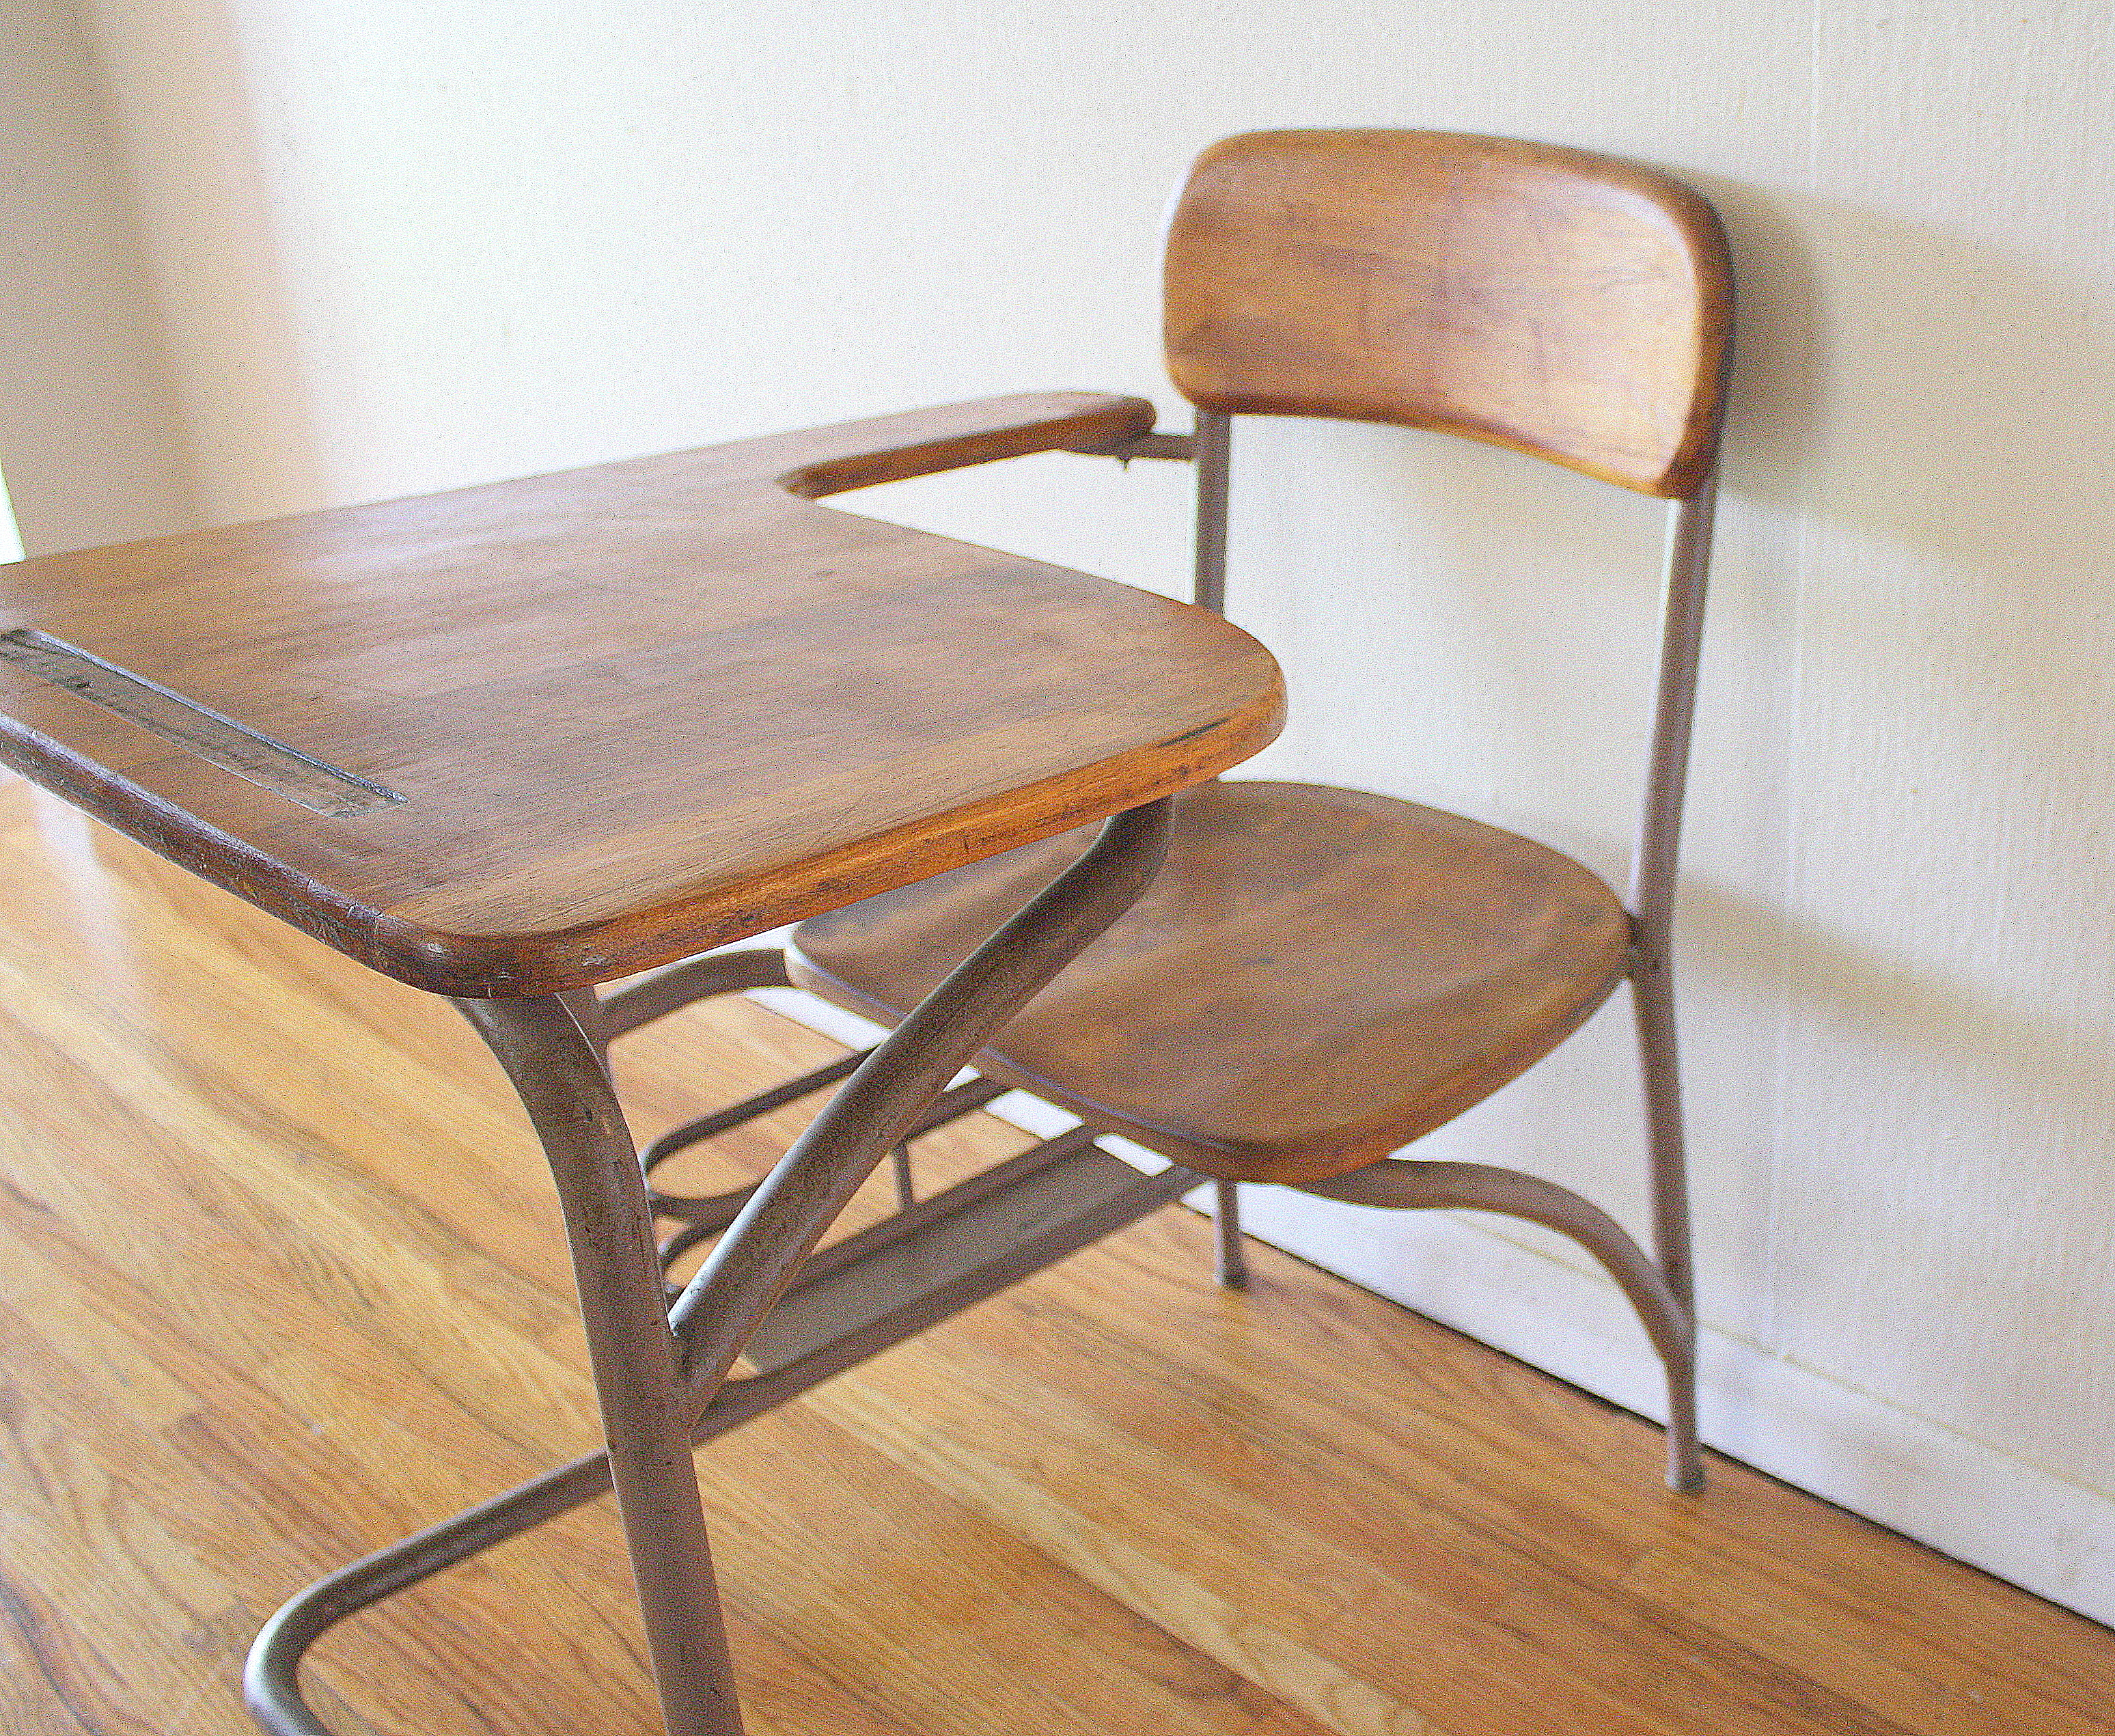 Heywood Wakefield Desk And Chair Circa 1940s Picked Vintage